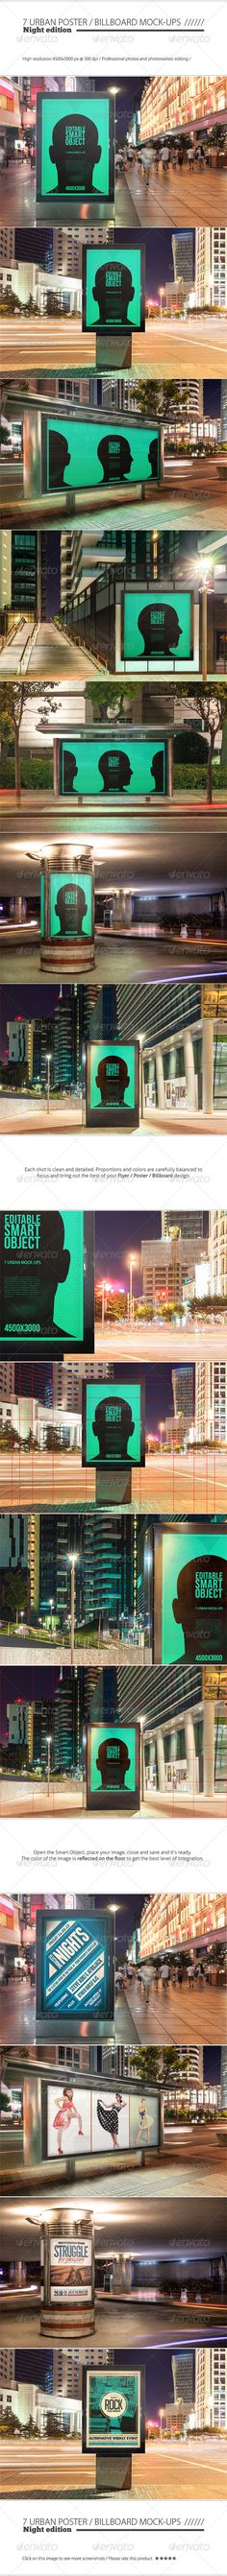 Urban Poster / Billboard Mock-ups - Night Edition --- Save time and put the spark on your flyer / poster / billboard design with this night urban mock-ups set. Professional photos and photorealistic editing. Proportions and colors of the elements of each shot were balanced to focus on your design and bring out the best of it. It's very easy to use, open the Smart Object and replace with any image.